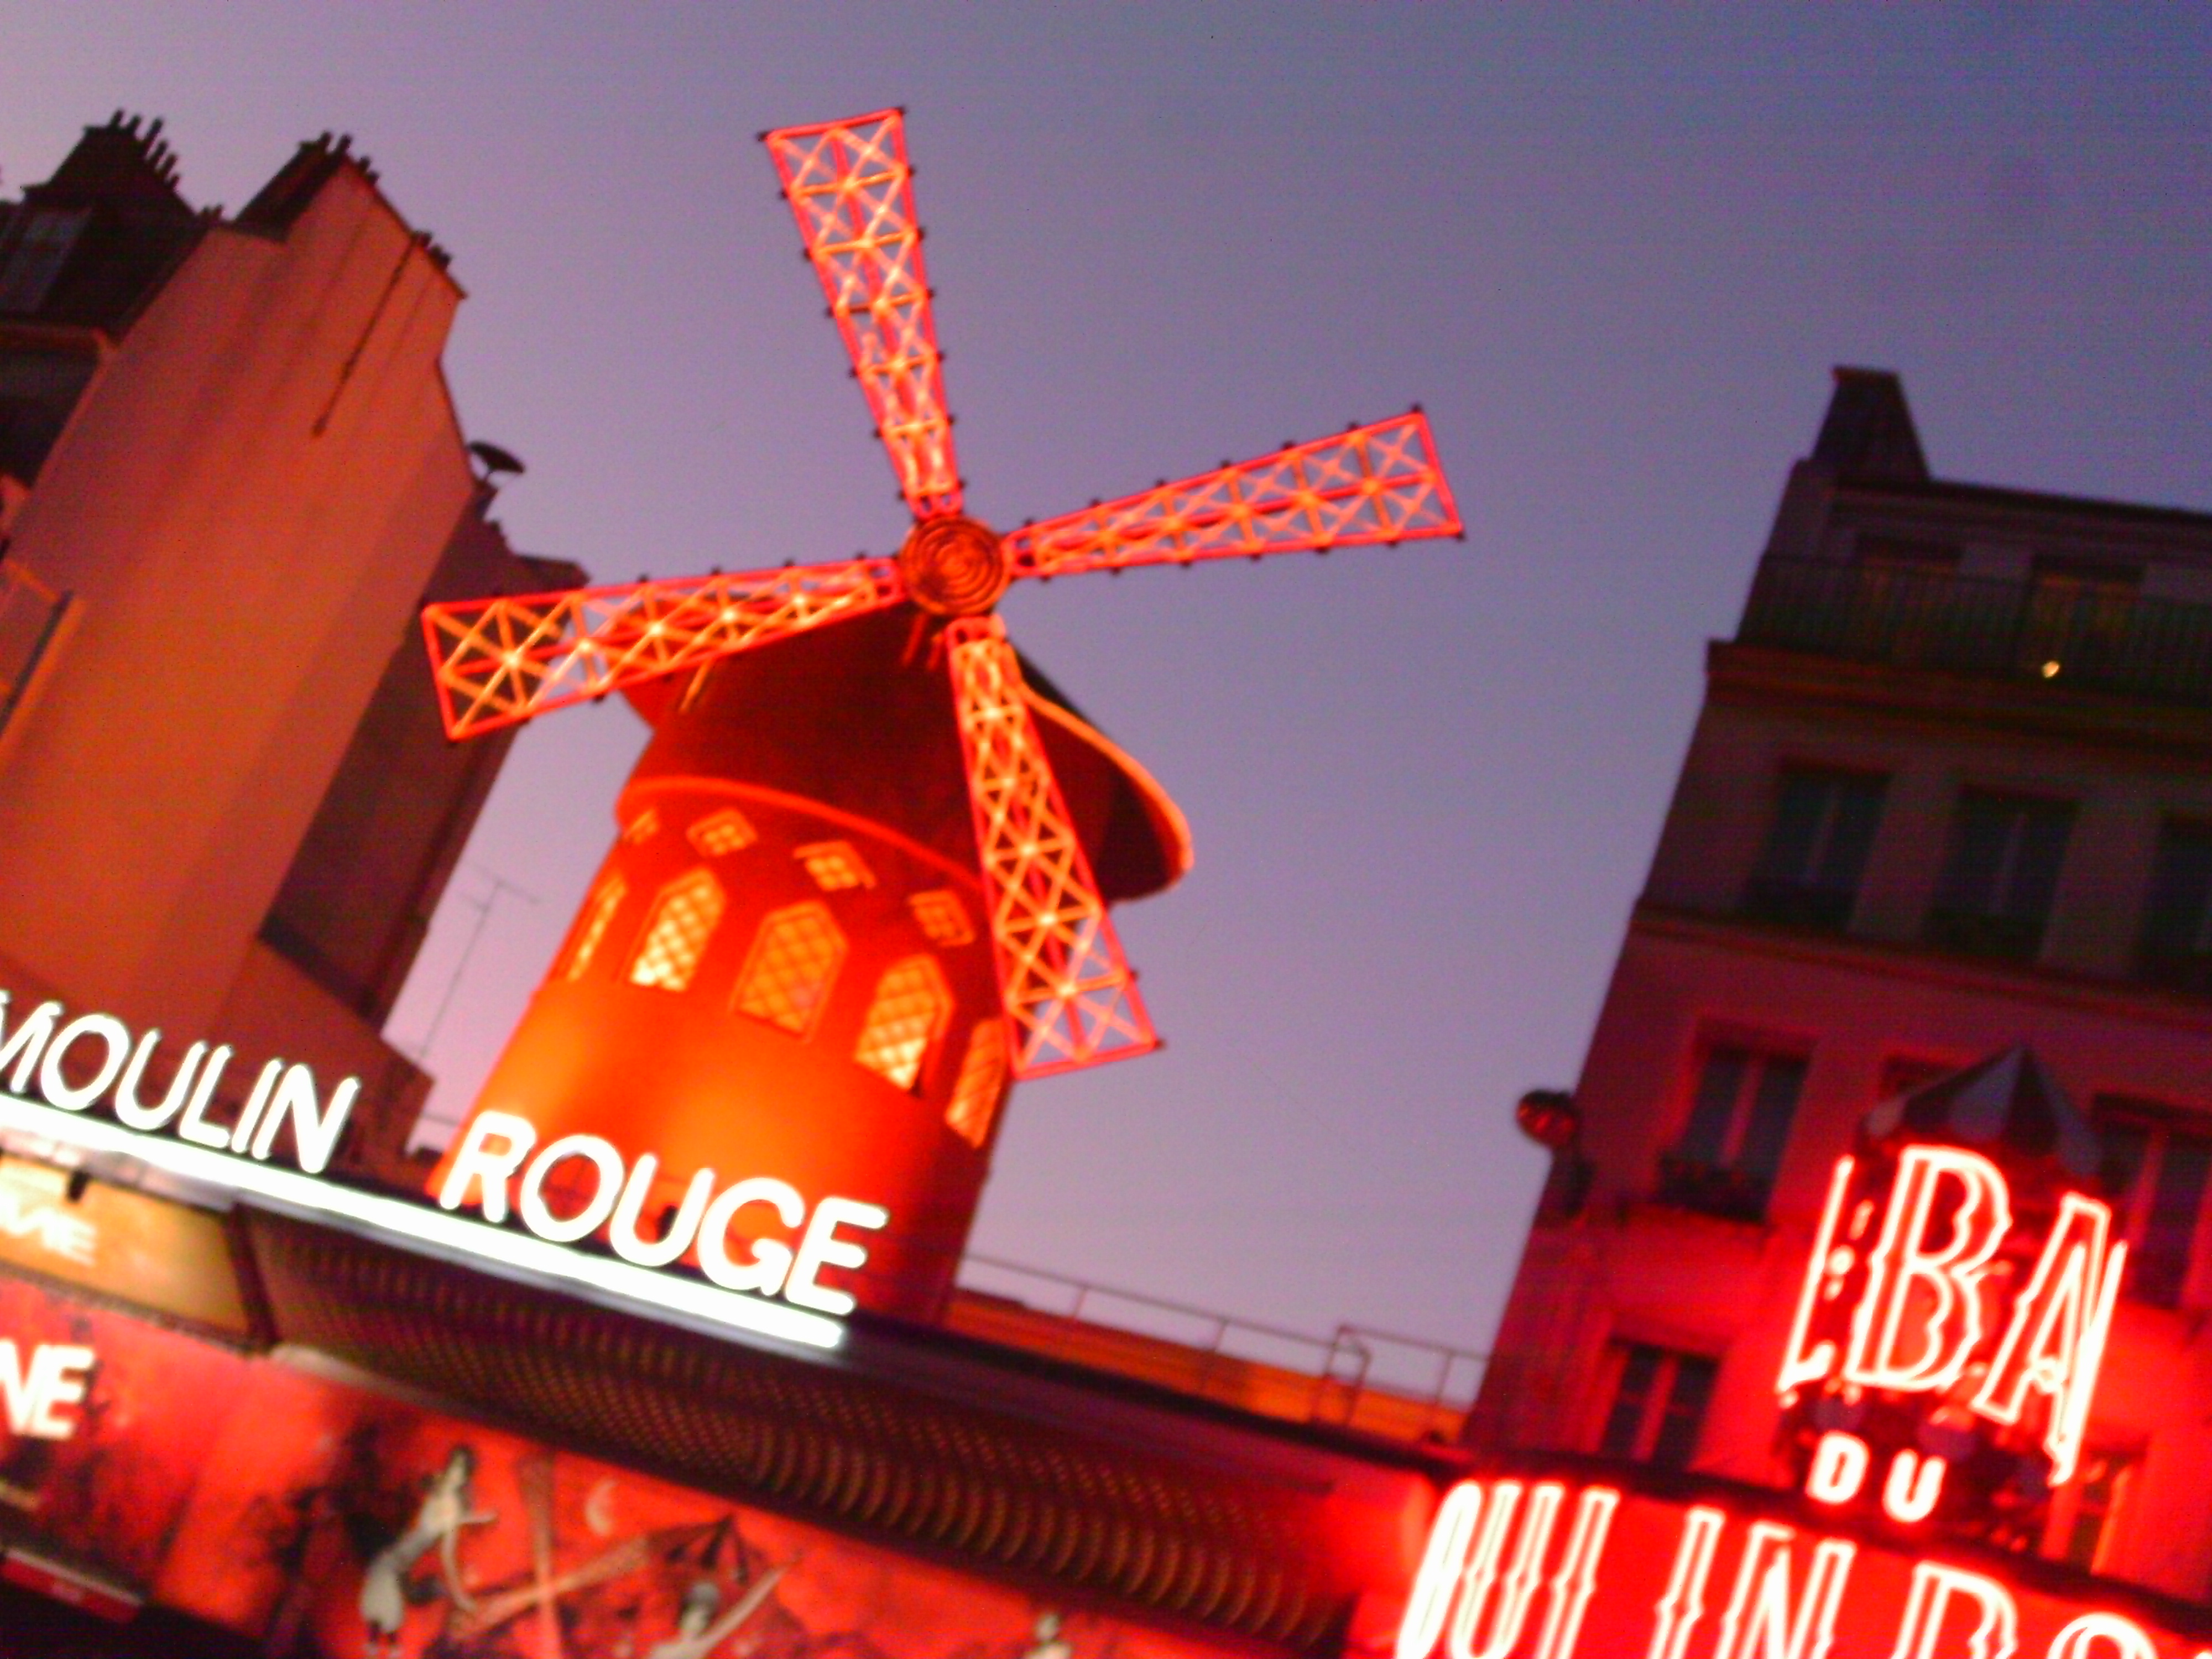 073 Moulin Rouge.JPG